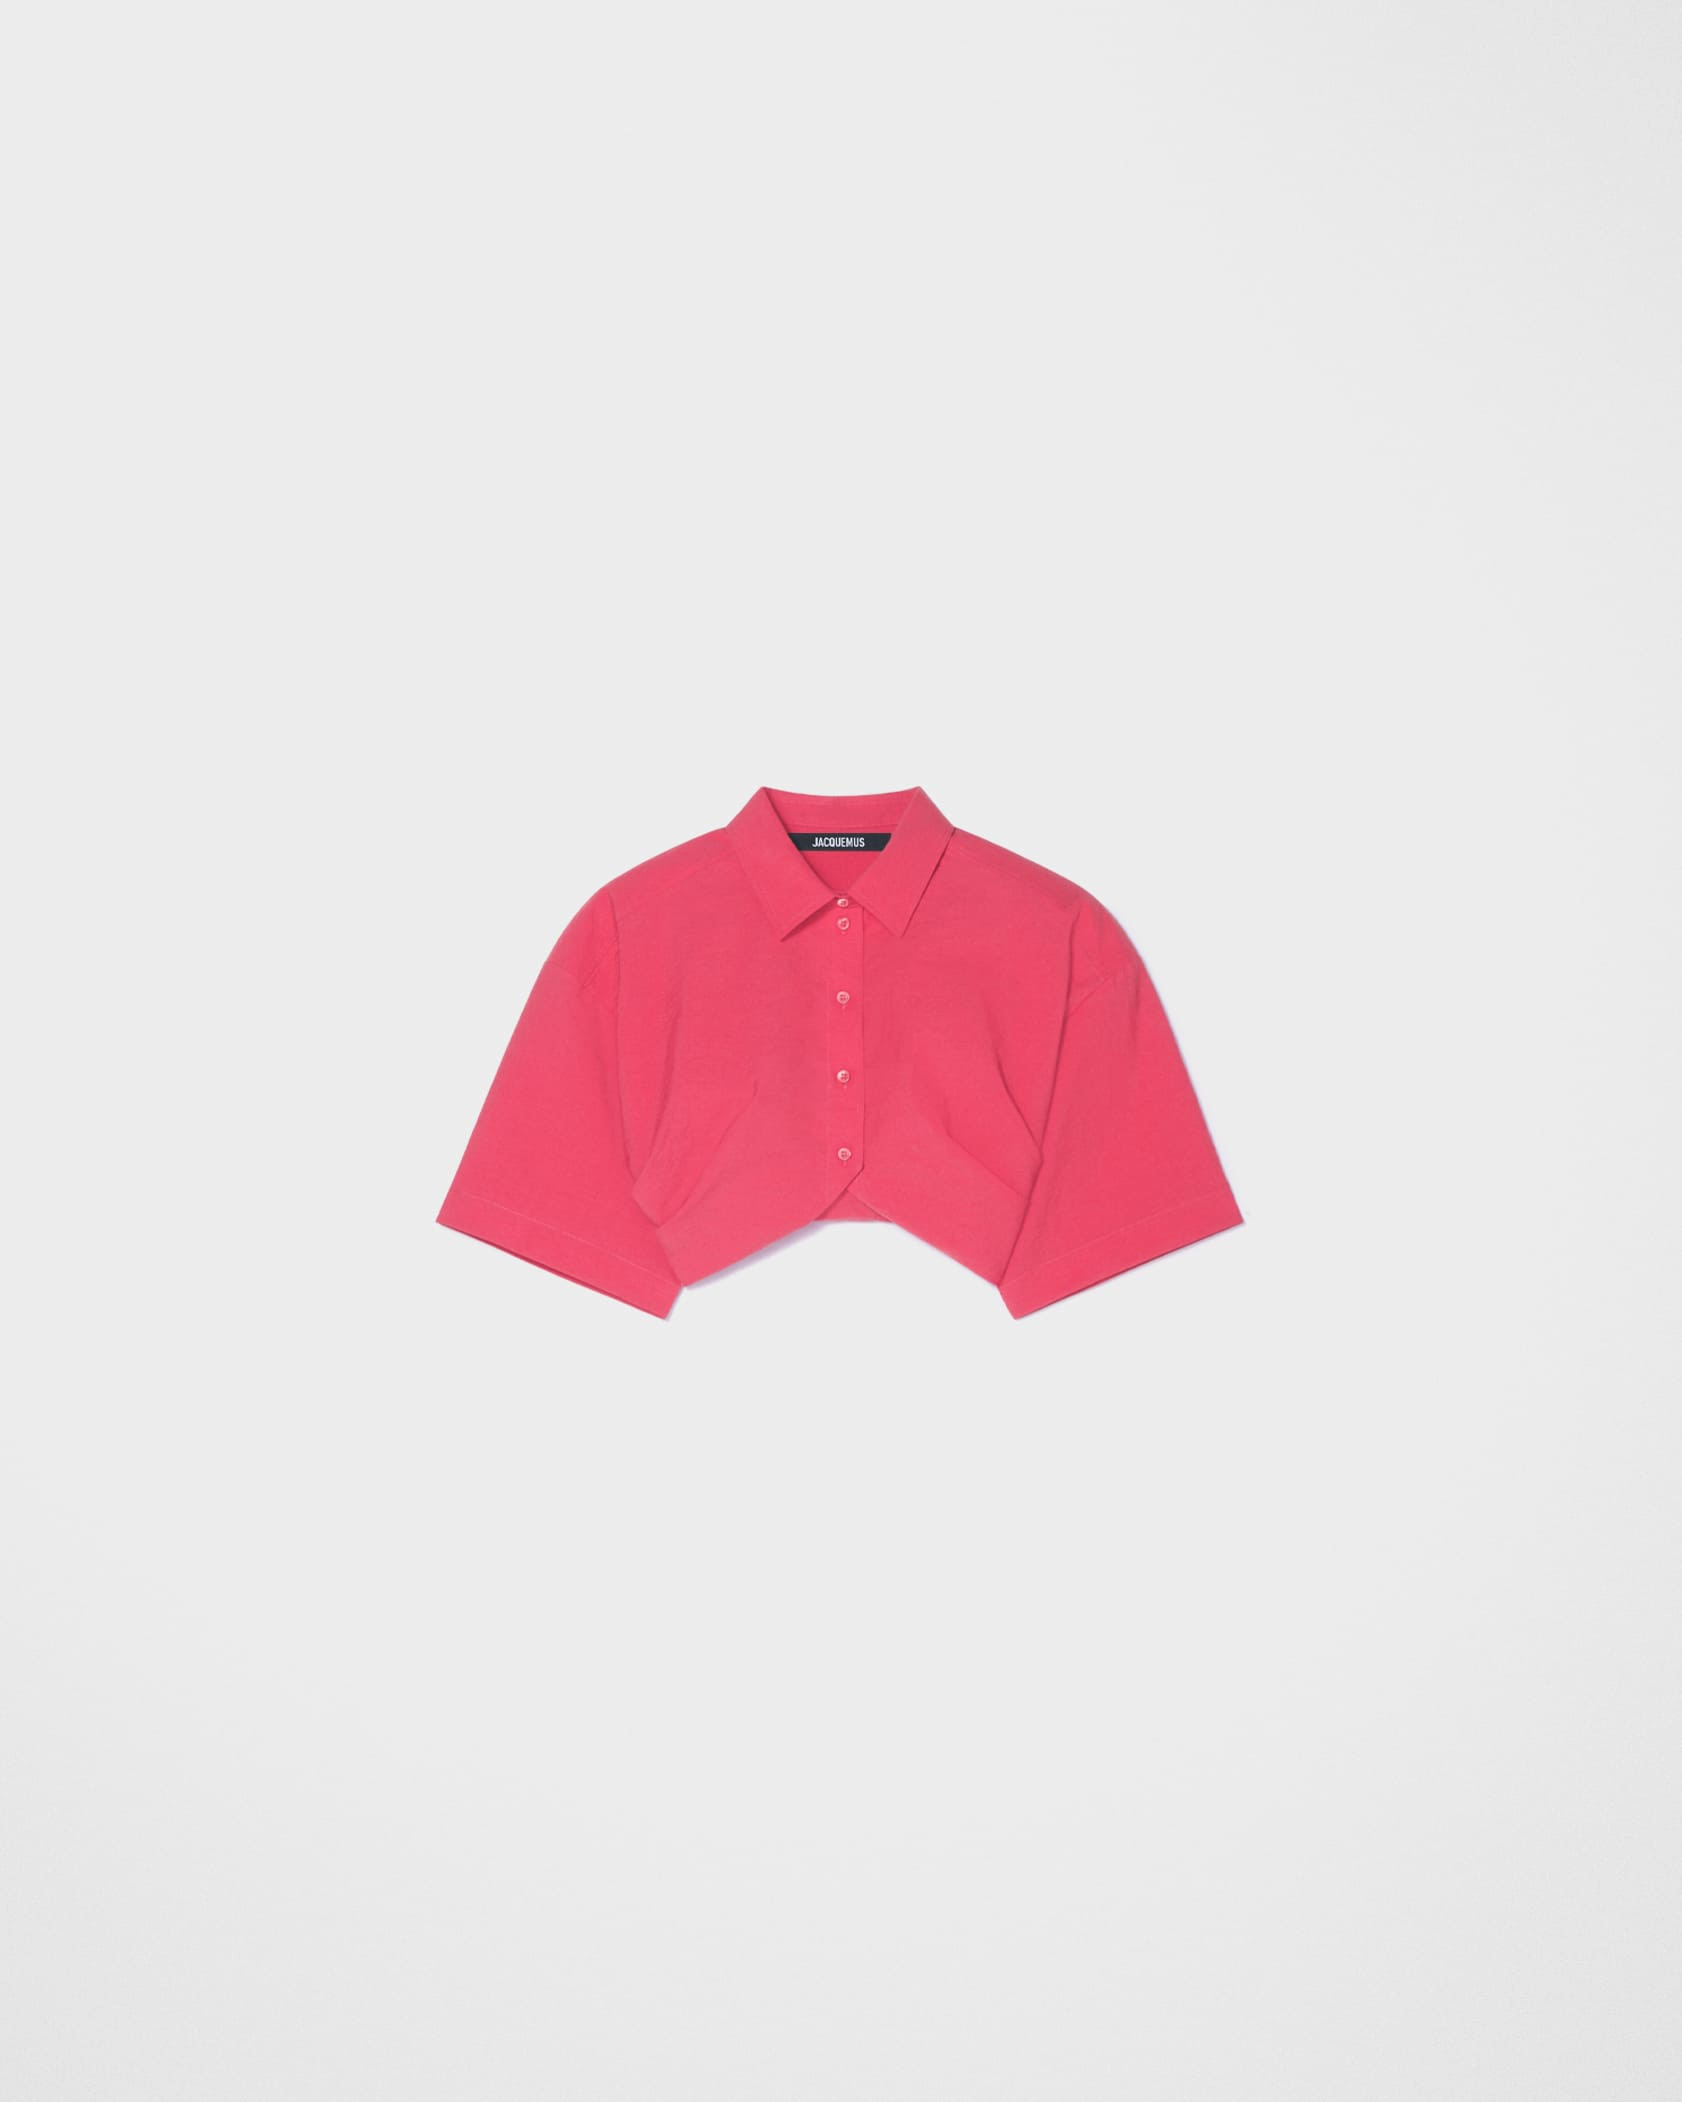 La chemise Ballu by Jacquemus, available on jacquemus.com for $420 Kendall Jenner Outerwear Exact Product